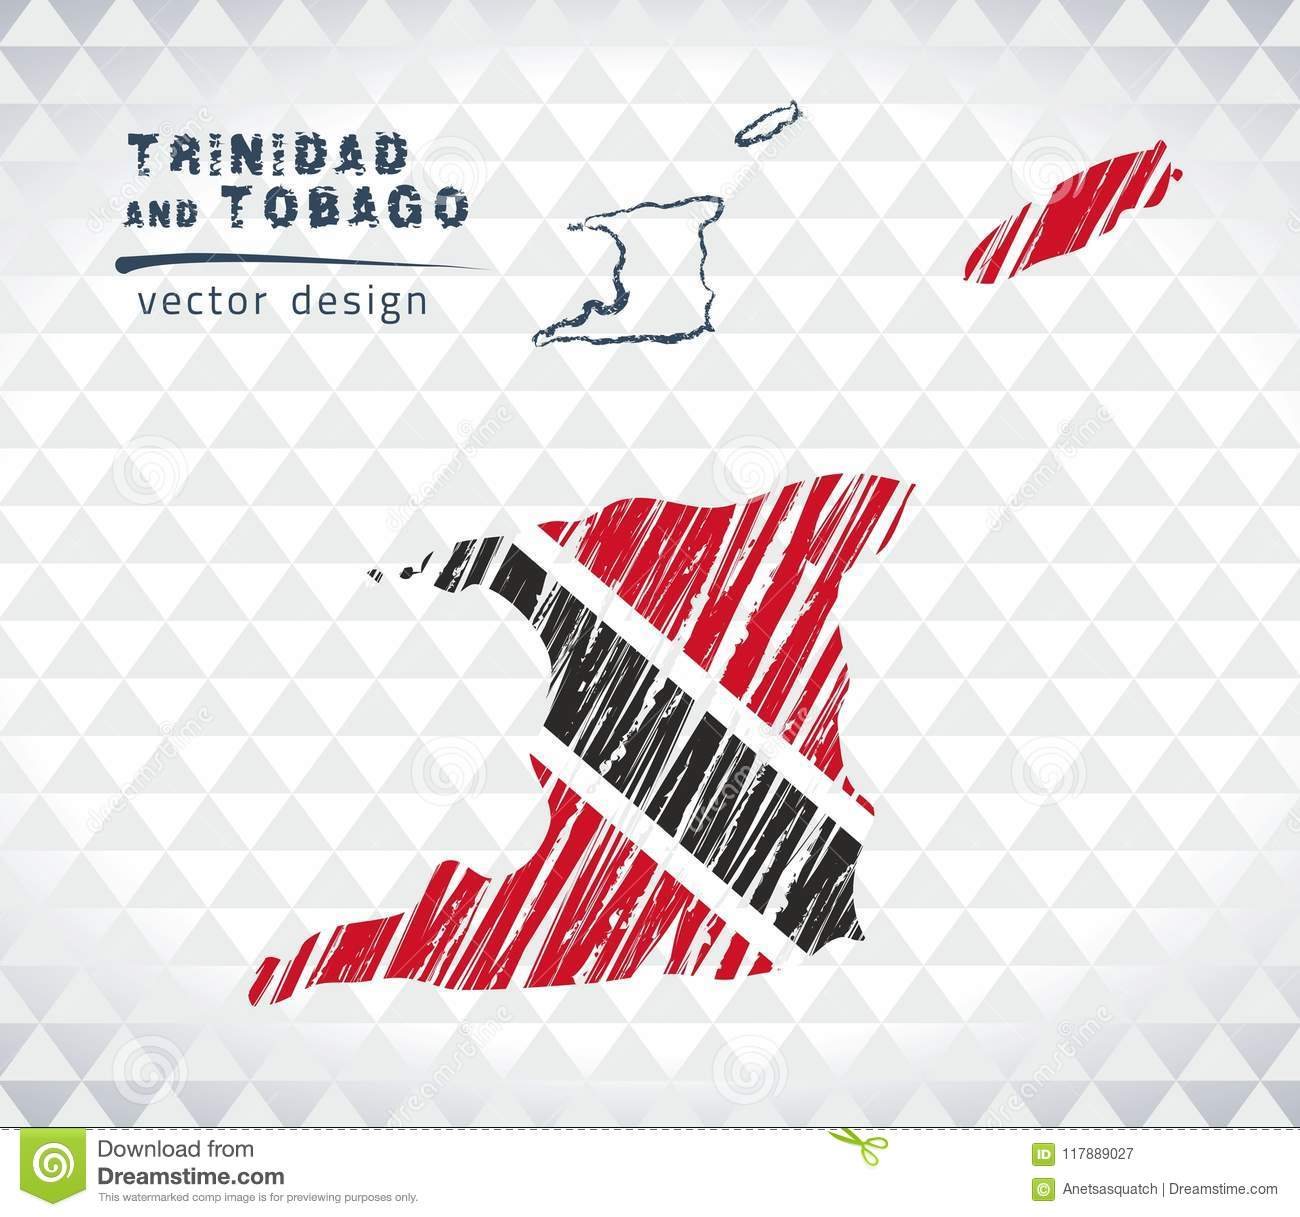 Map of Trinidad and Tobago with hand drawn sketch pen map inside. Vector illustration